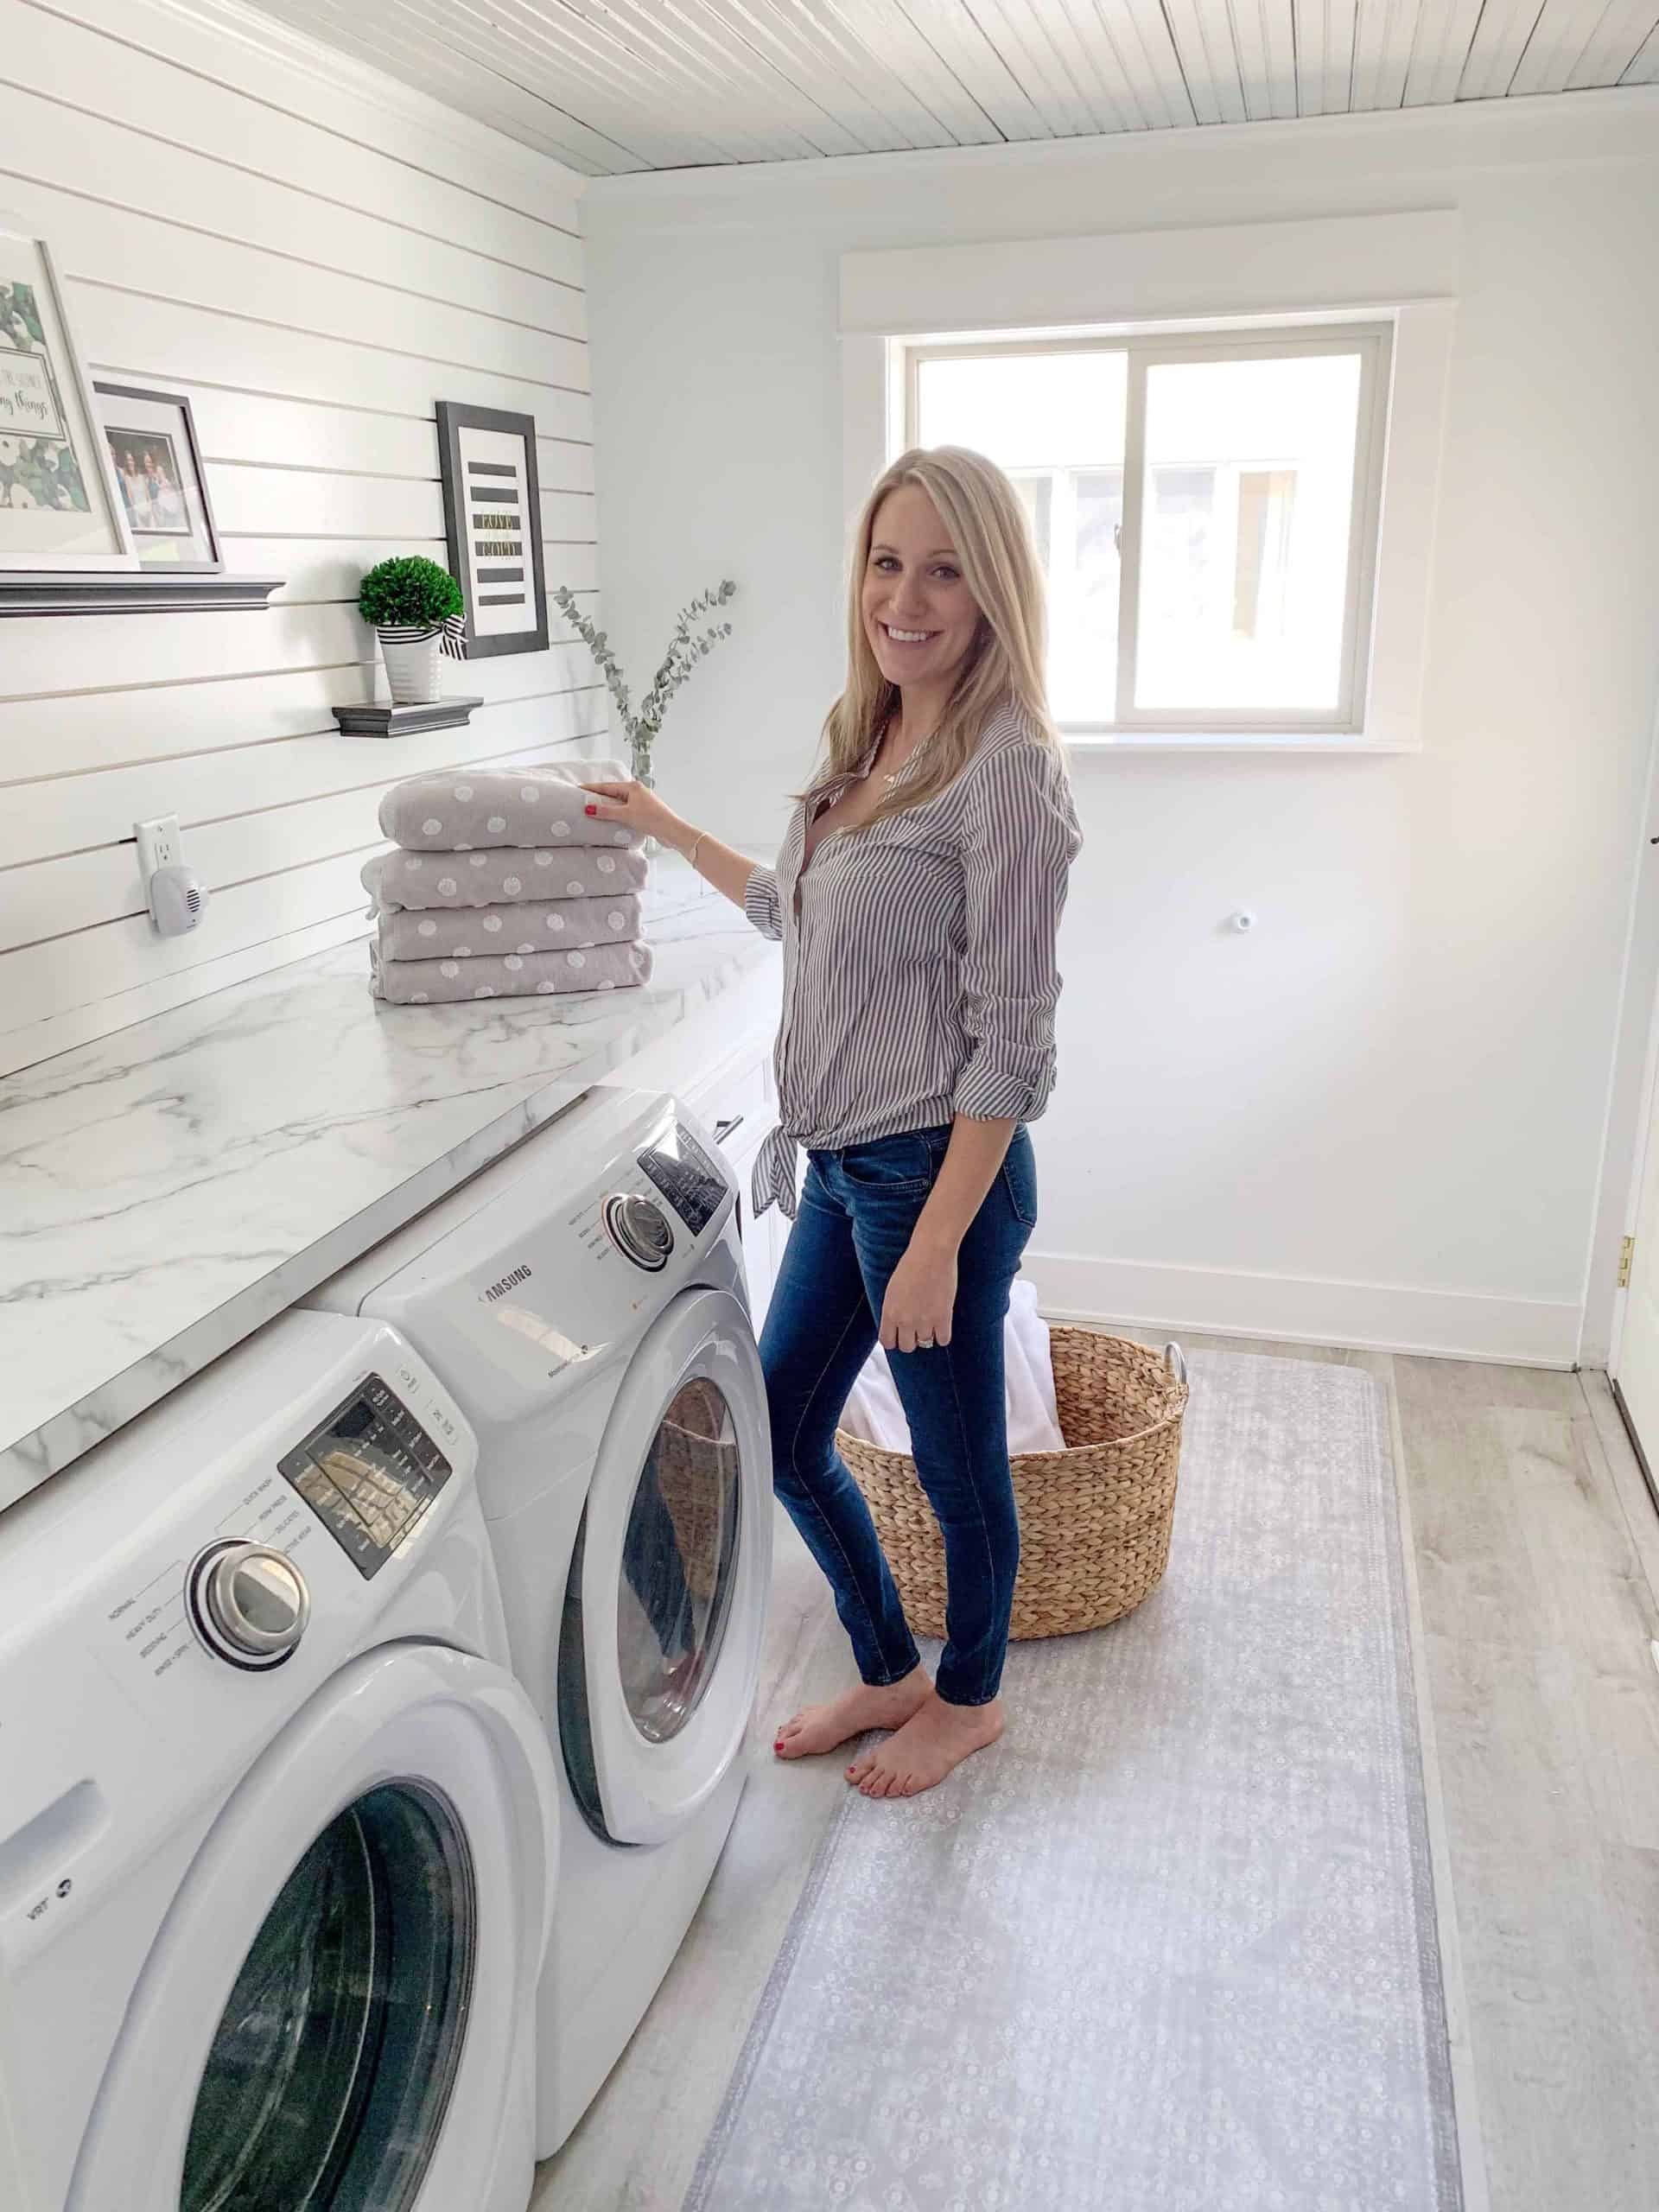 fashionable woman standing in laundry room